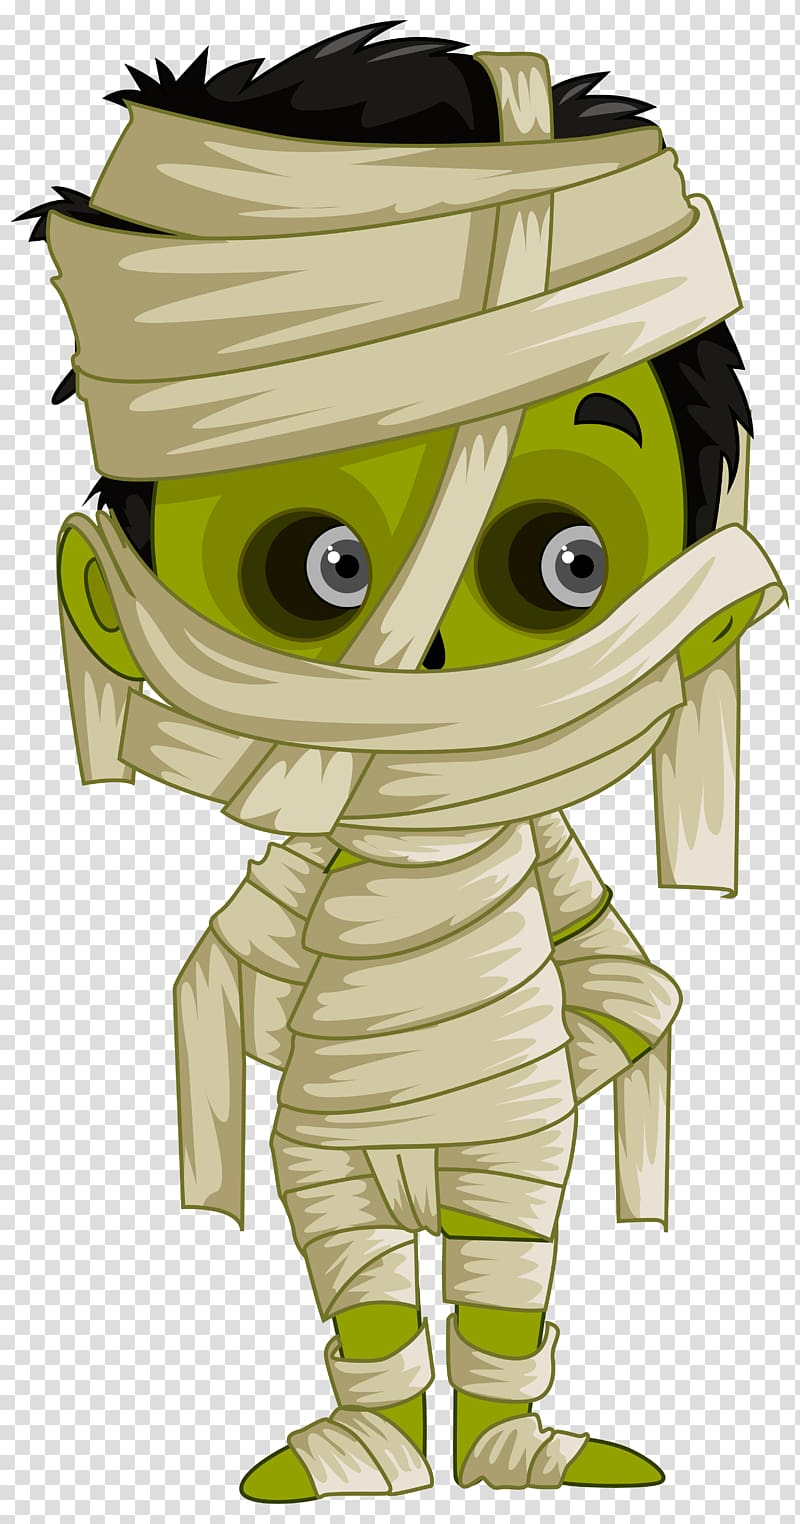 Youtube transparent background png. Mummy clipart cute halloween character